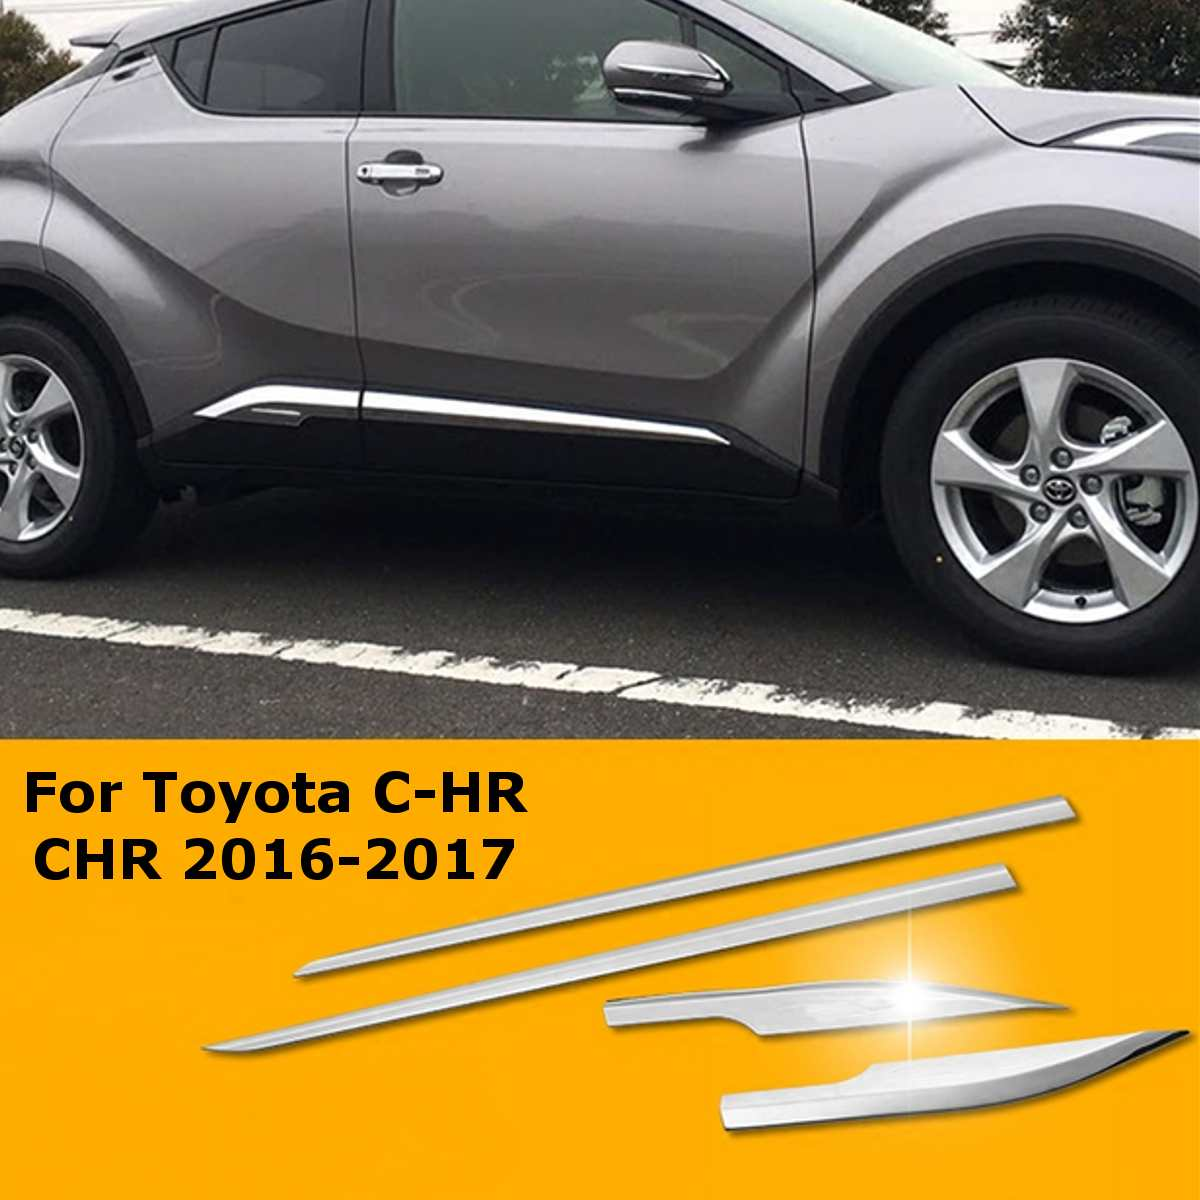 4PC Car Door Side Moulding Trim For Toyota C HR CHR 2016 2017 ABS Glossy Silver Exterior Upgrades Durable Lightweight